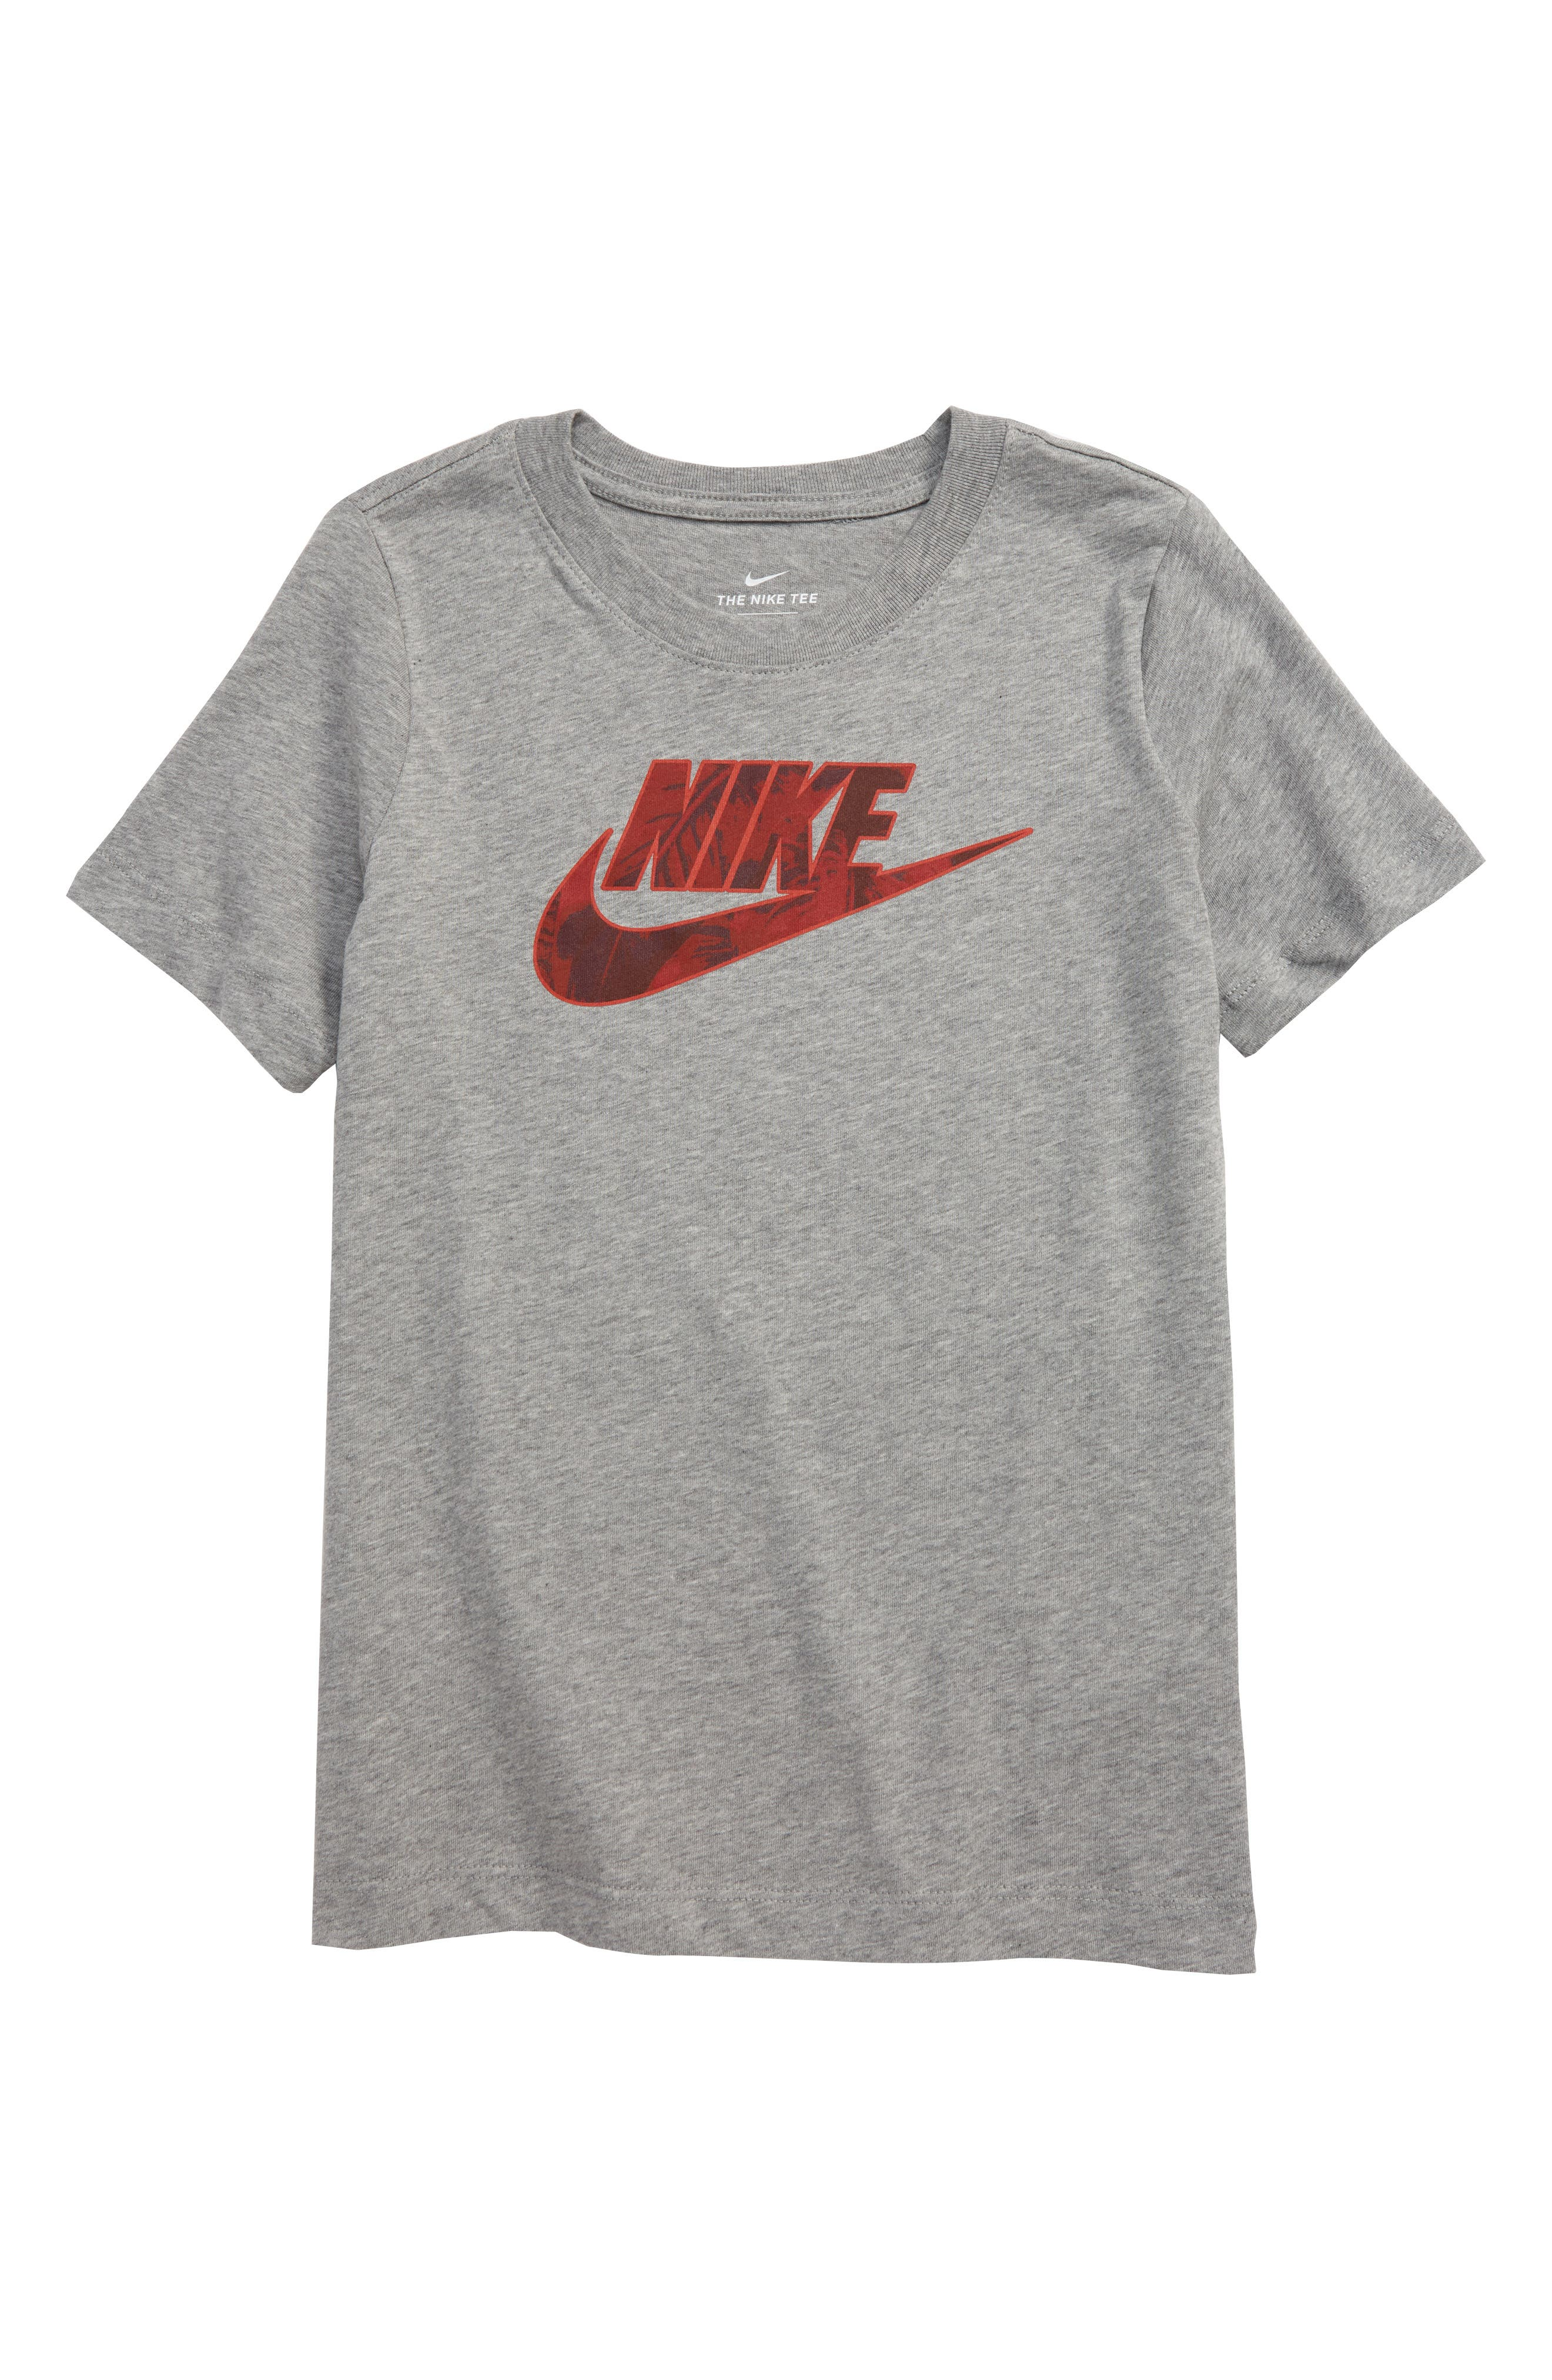 Nike Toddler Girls Sleeveless T-shirt Dark Gray Heather Size 3t Discounts Price Clothing, Shoes & Accessories